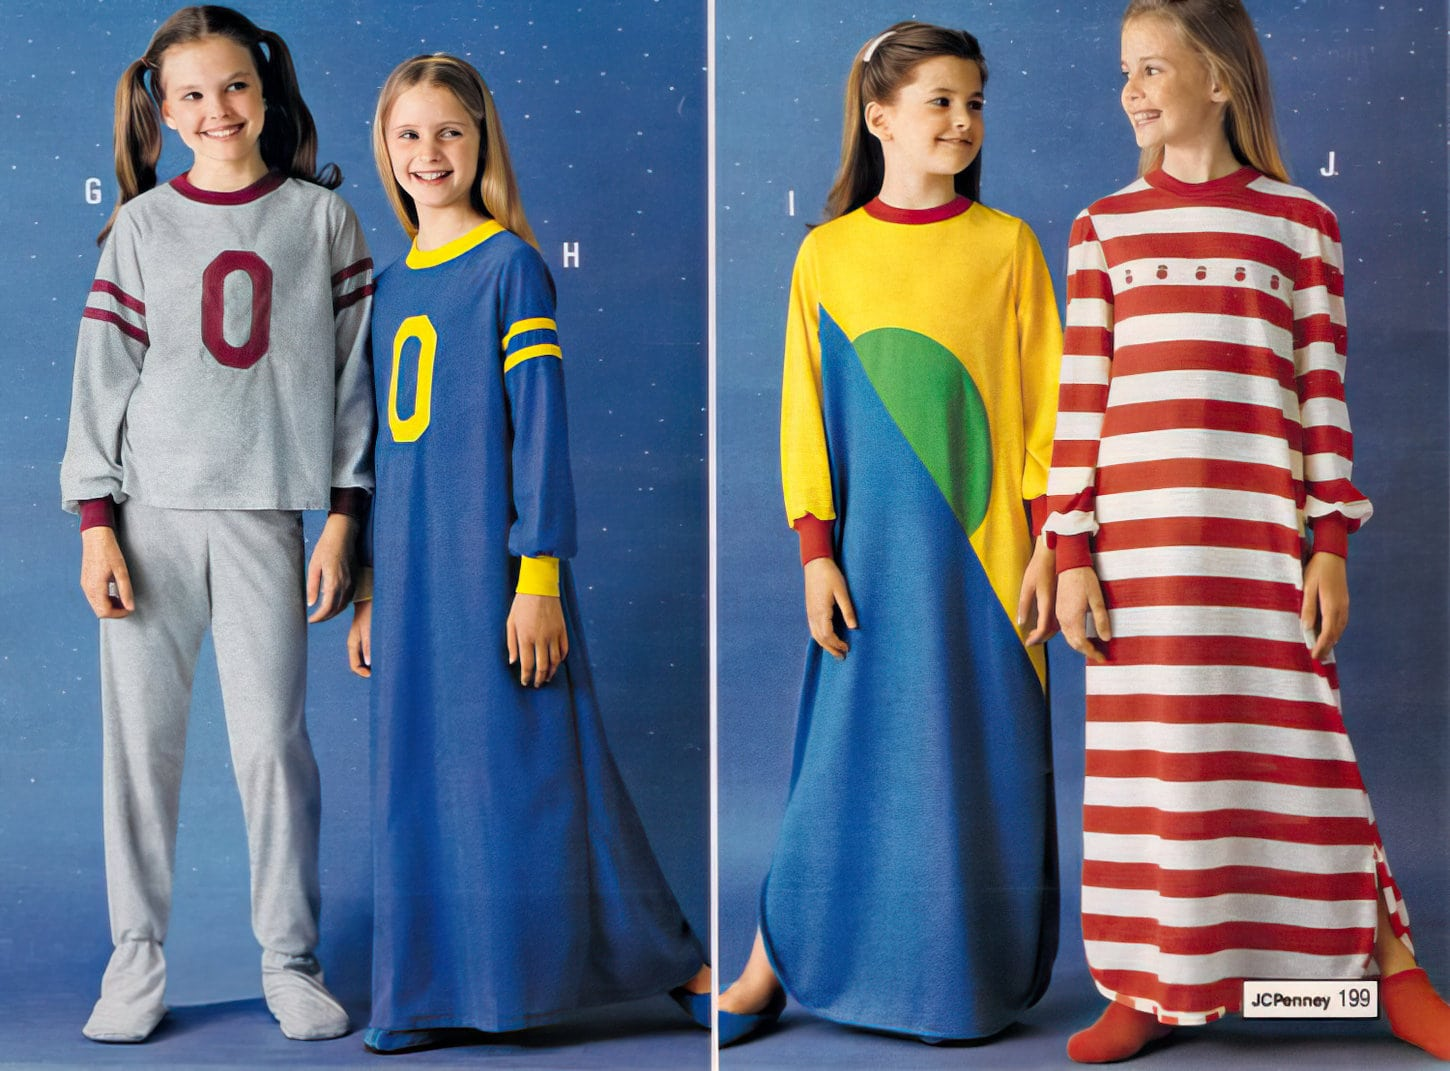 Retro 80s pajamas and nightgowns for girls (1980)